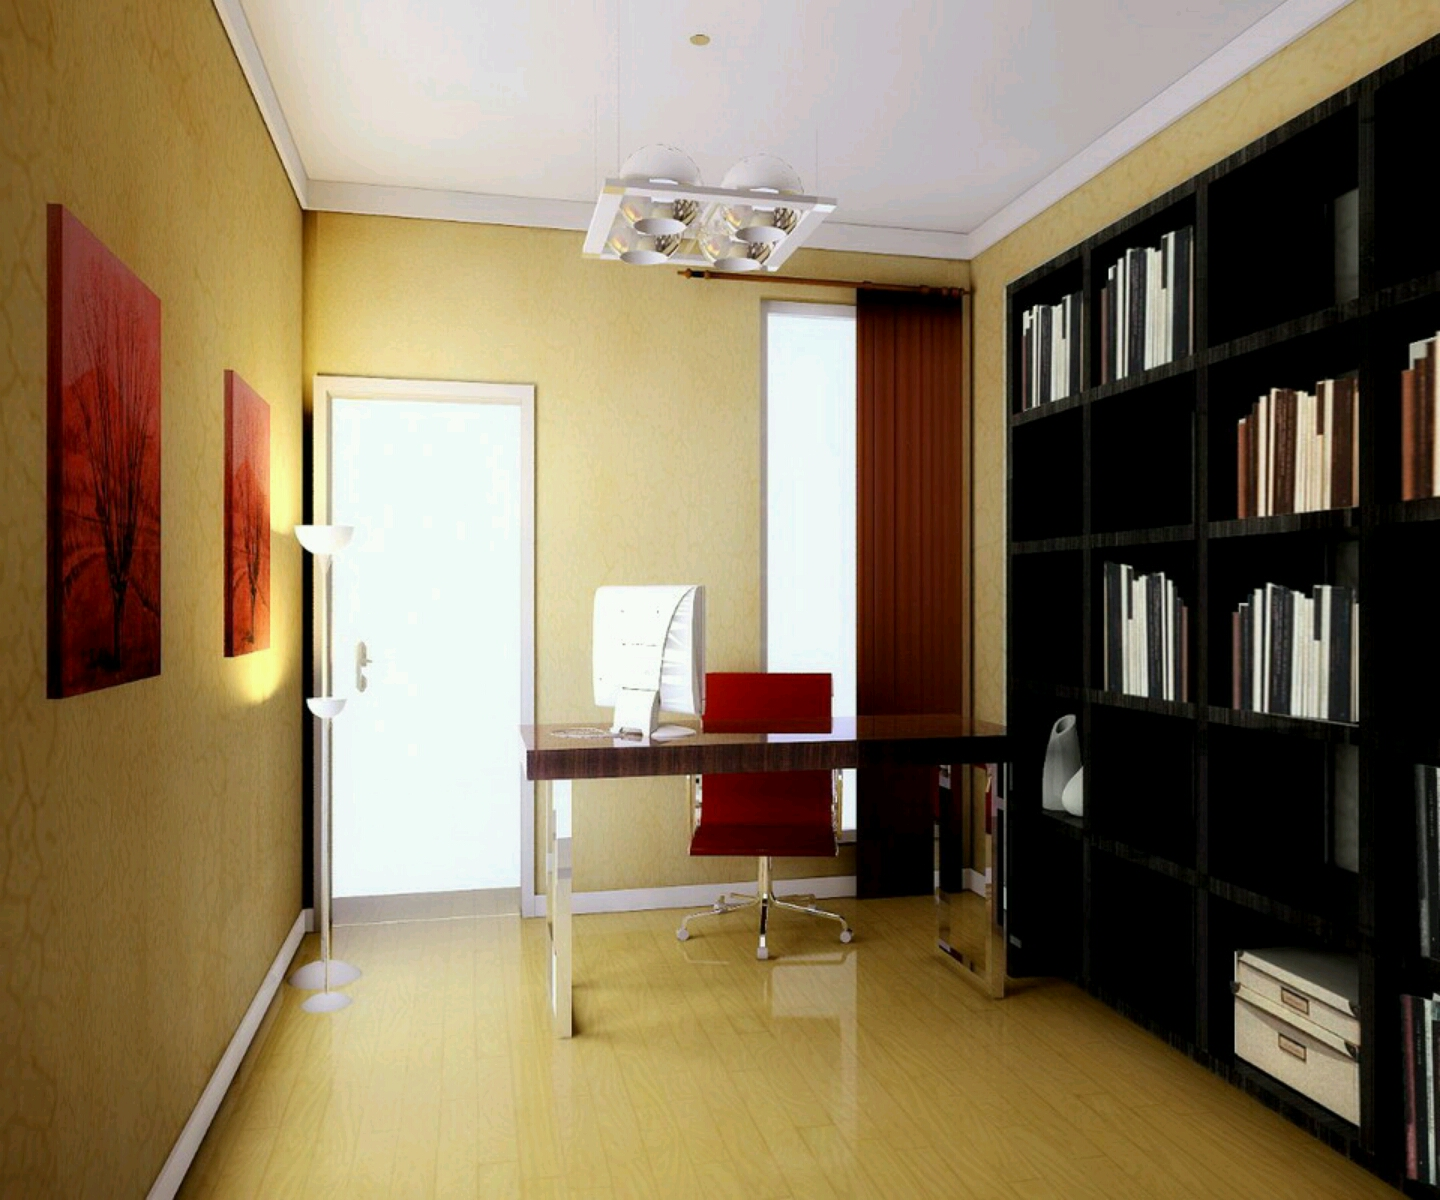 Modern Furniture Modern Study Room Furnitures Designs Ideas: Modern Furniture: Study Rooms Furnitures Designs Ideas